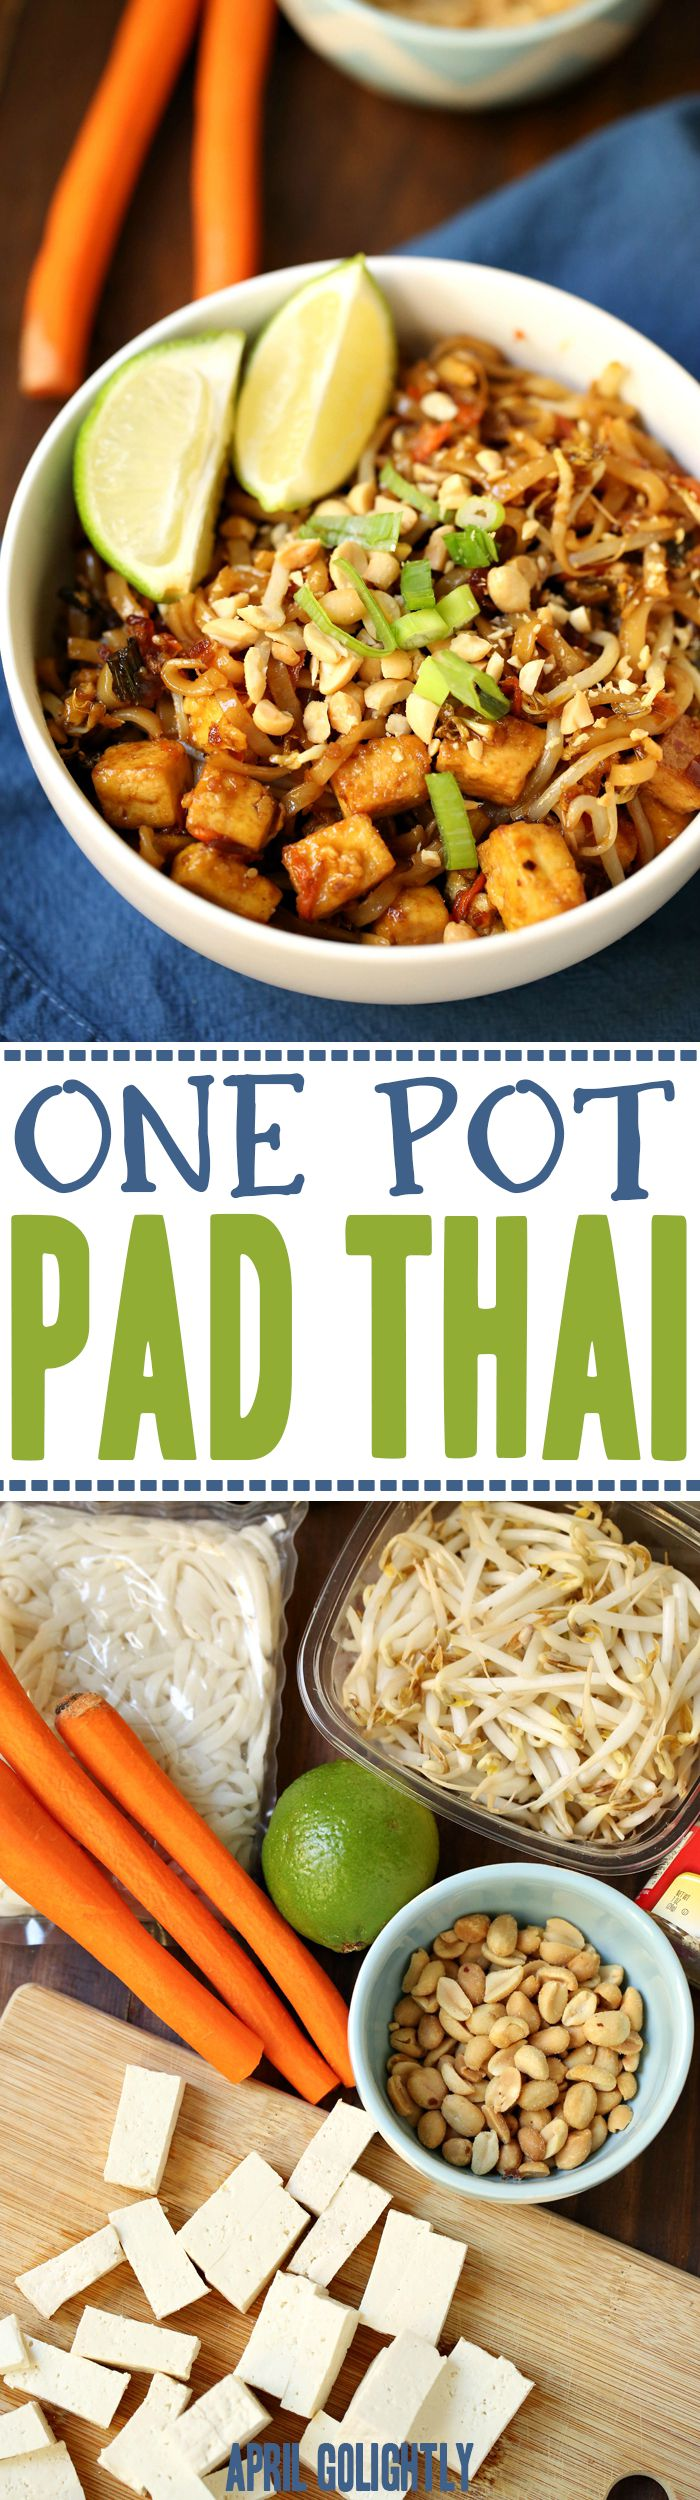 Best 25 healthy one pot meals ideas on pinterest healthy lunch easy one pot pad thai recipe to make quickly for dinner with less dishes and healthy forumfinder Images